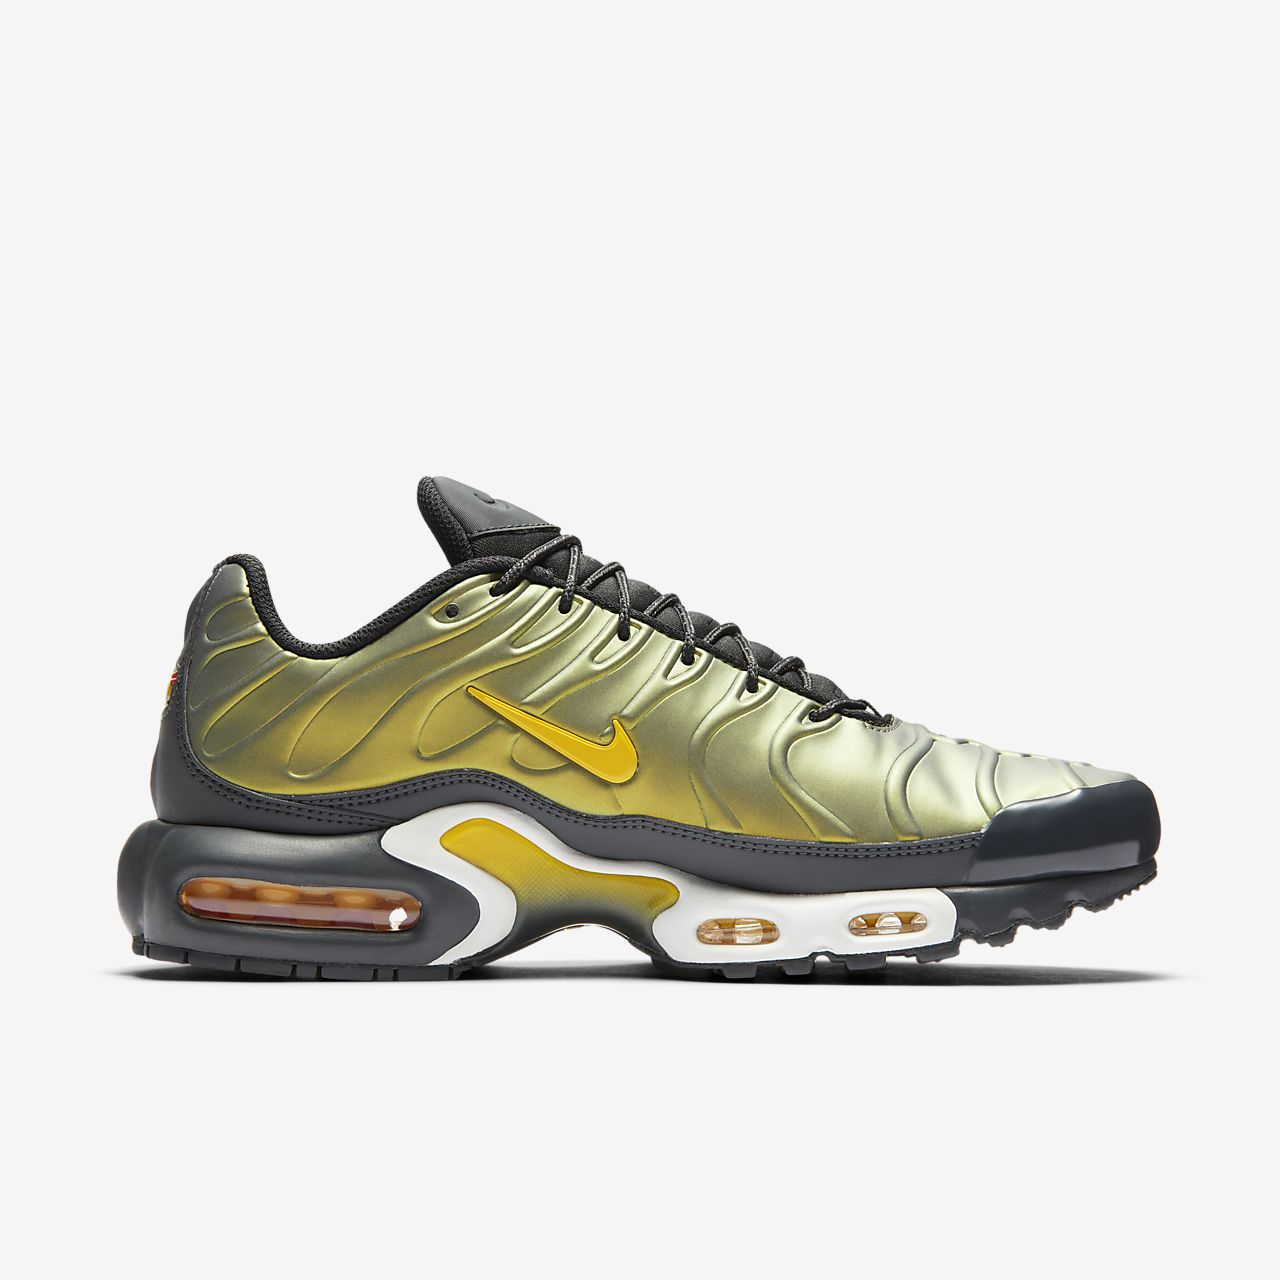 new style 2abaa a4b6a ... Nike Air Max Plus SE Men s Shoe